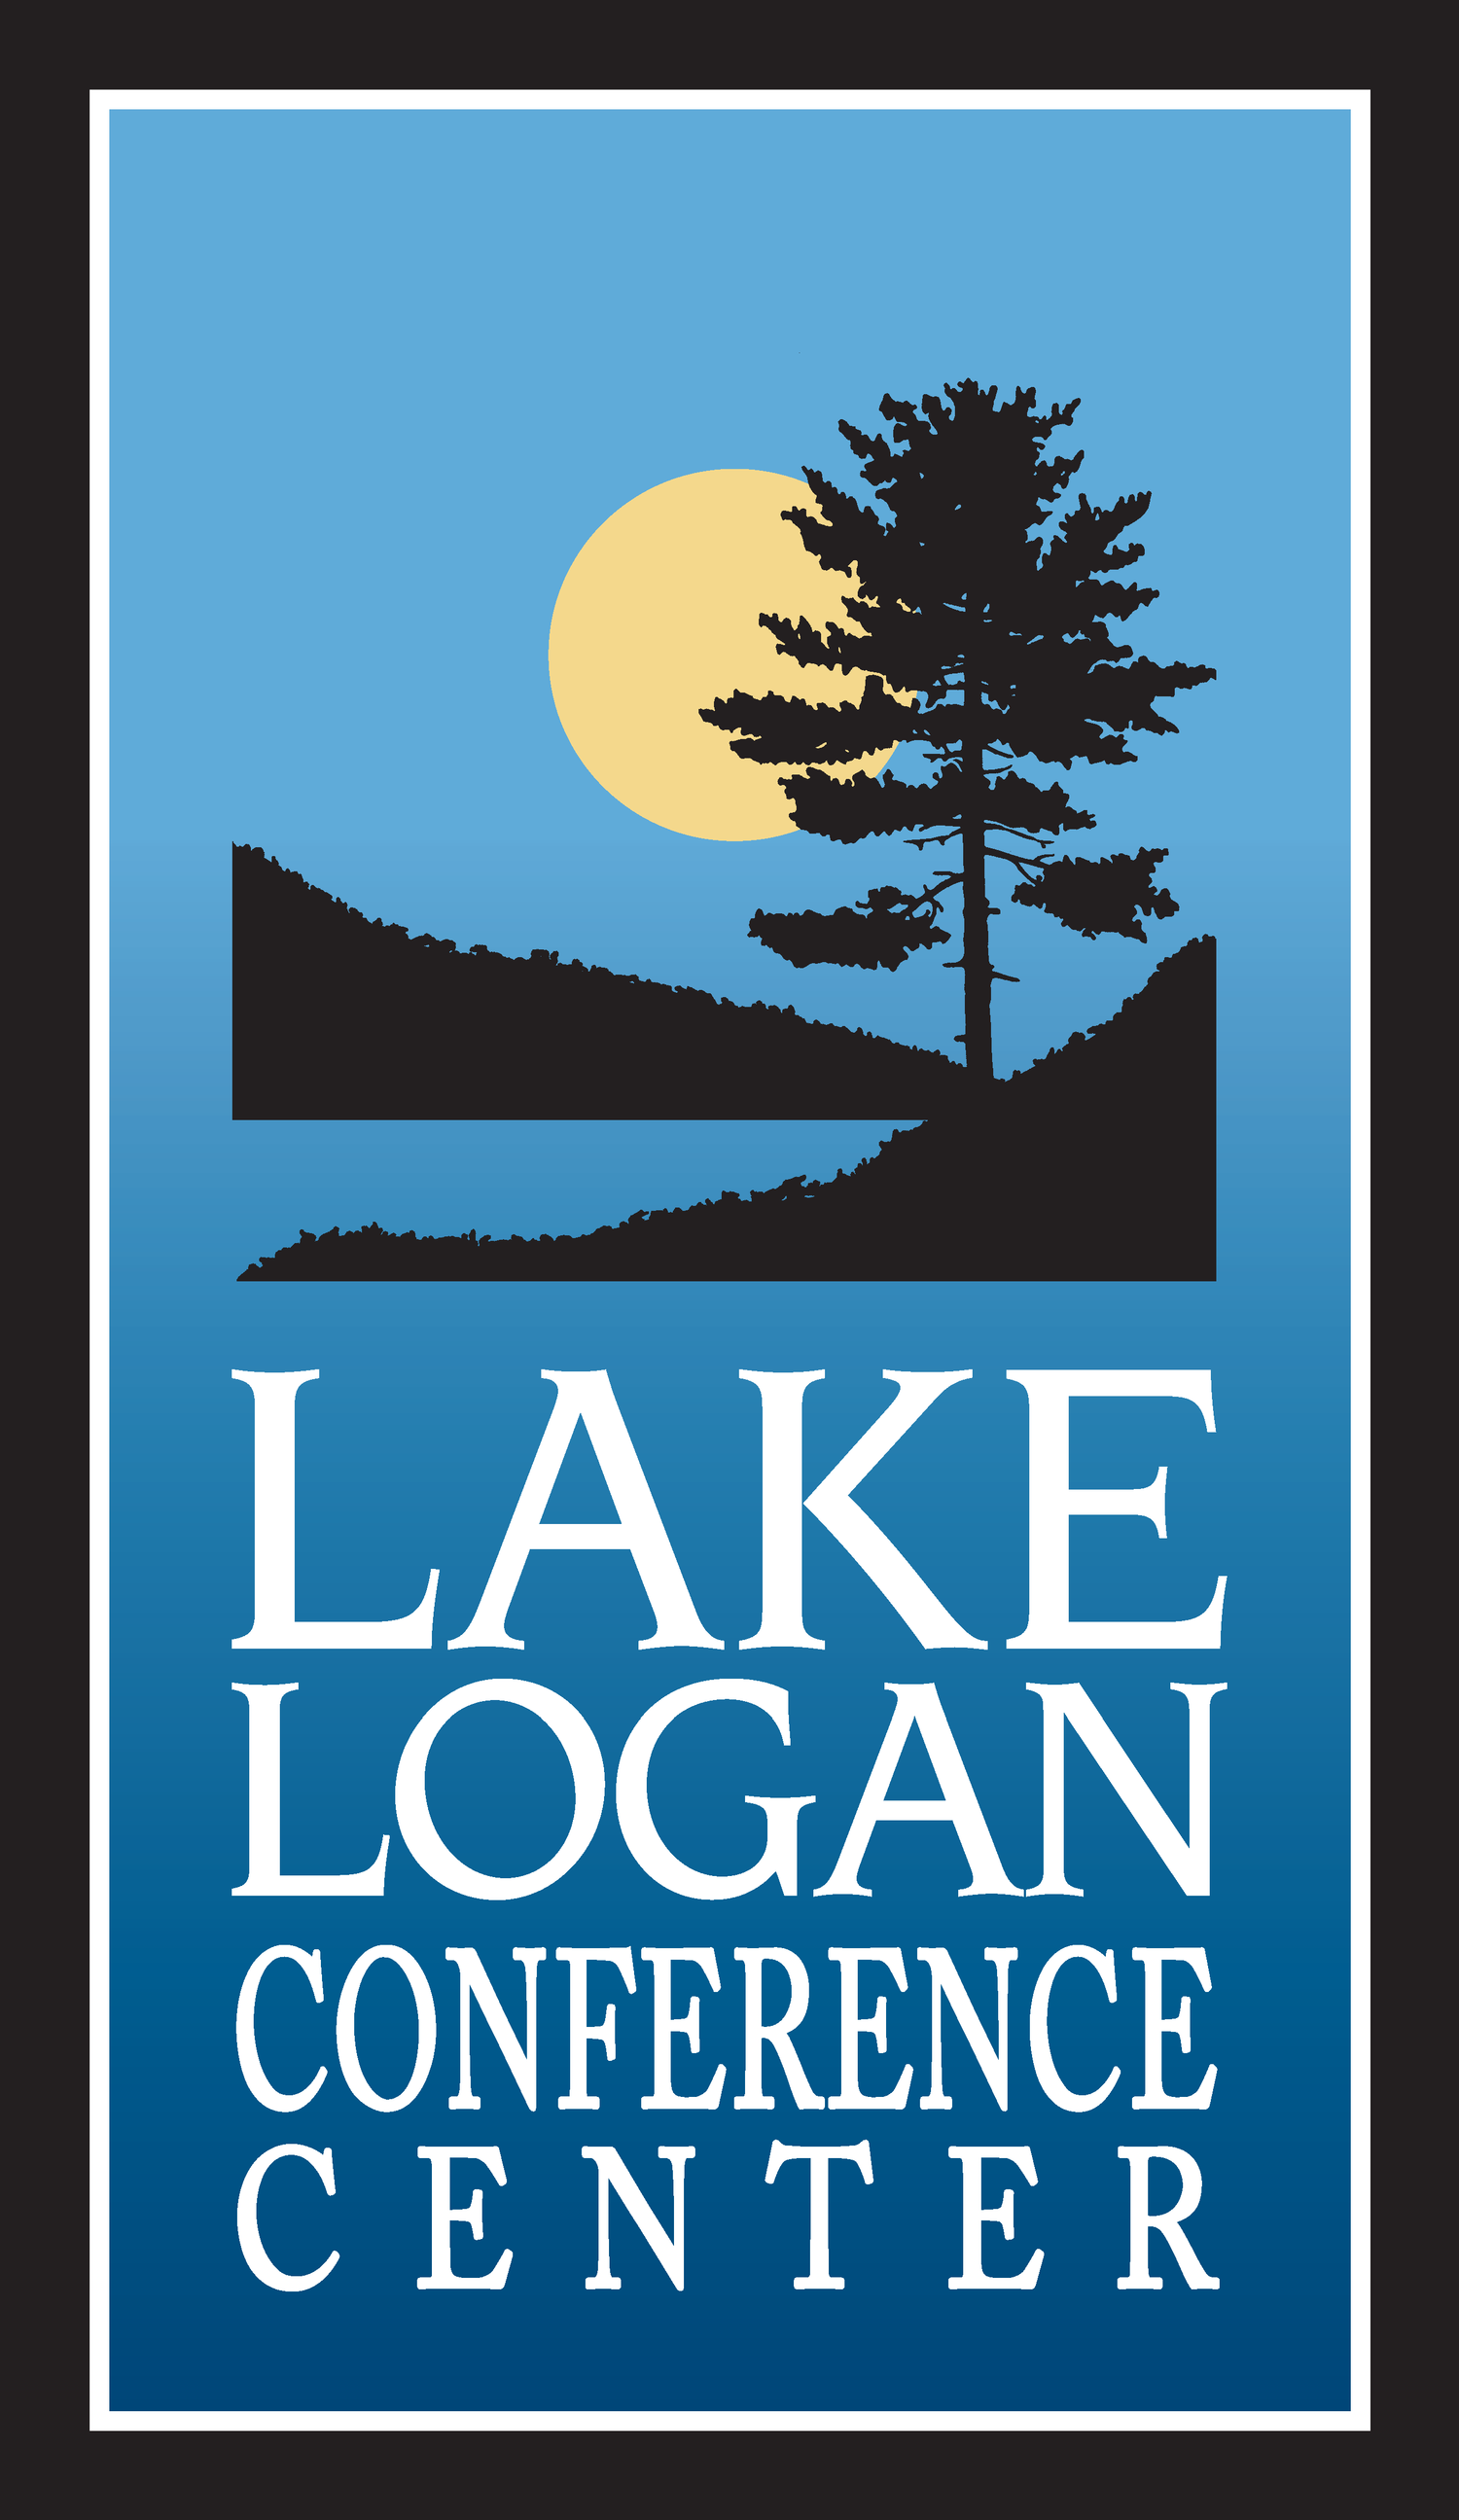 Lake Logan Conference Center